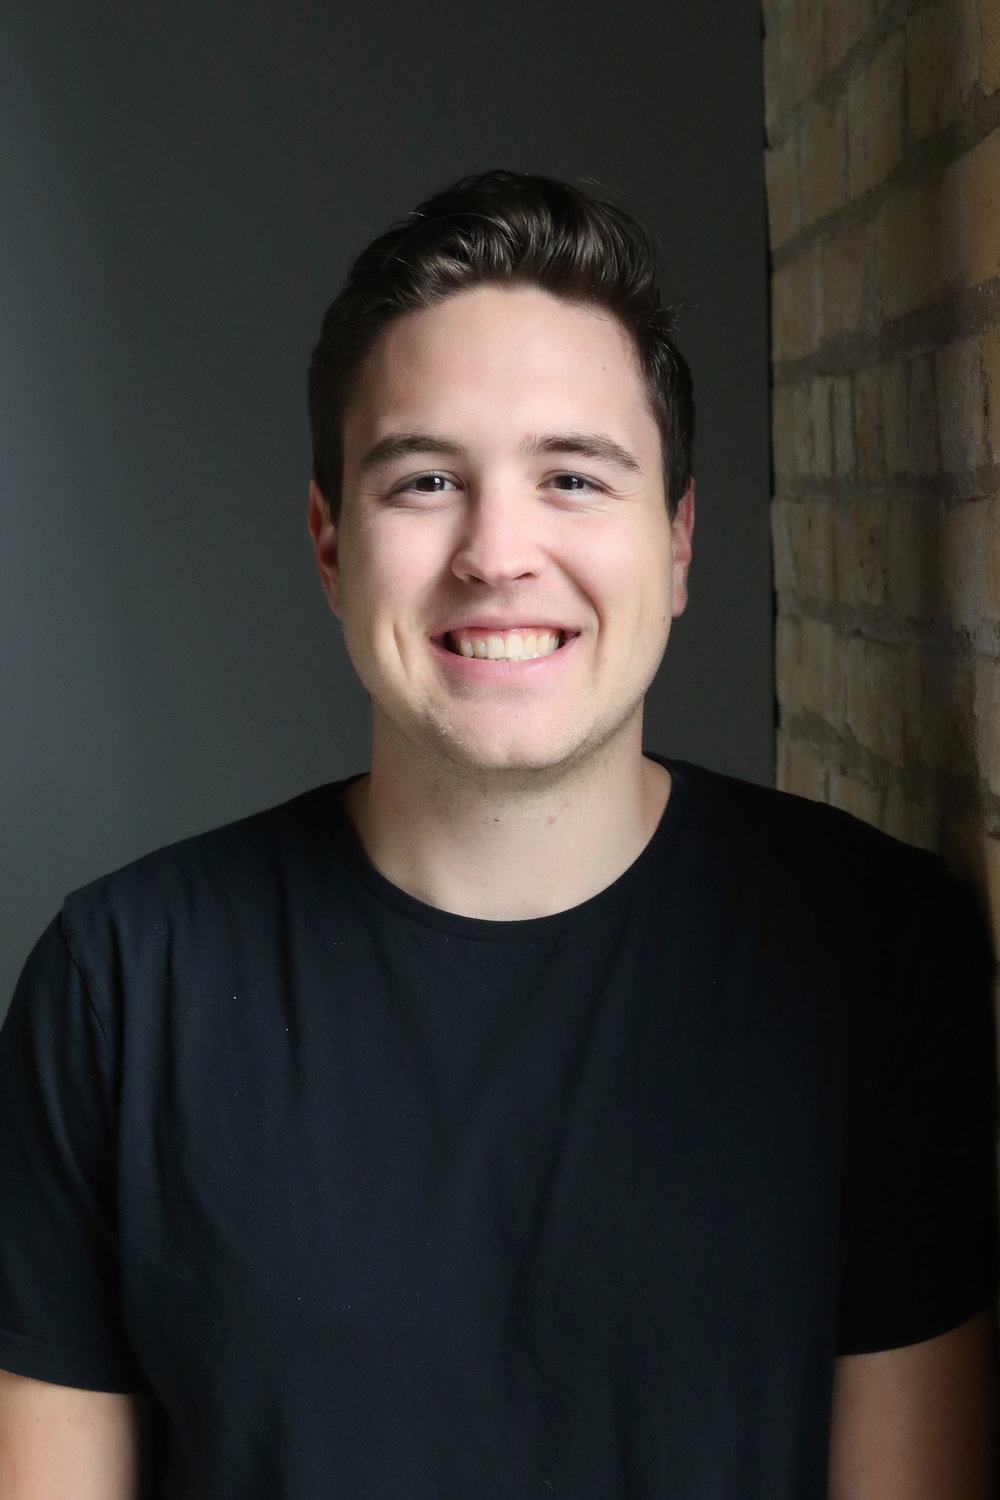 Oscar Eclov-Reher, Digital Marketing Intern